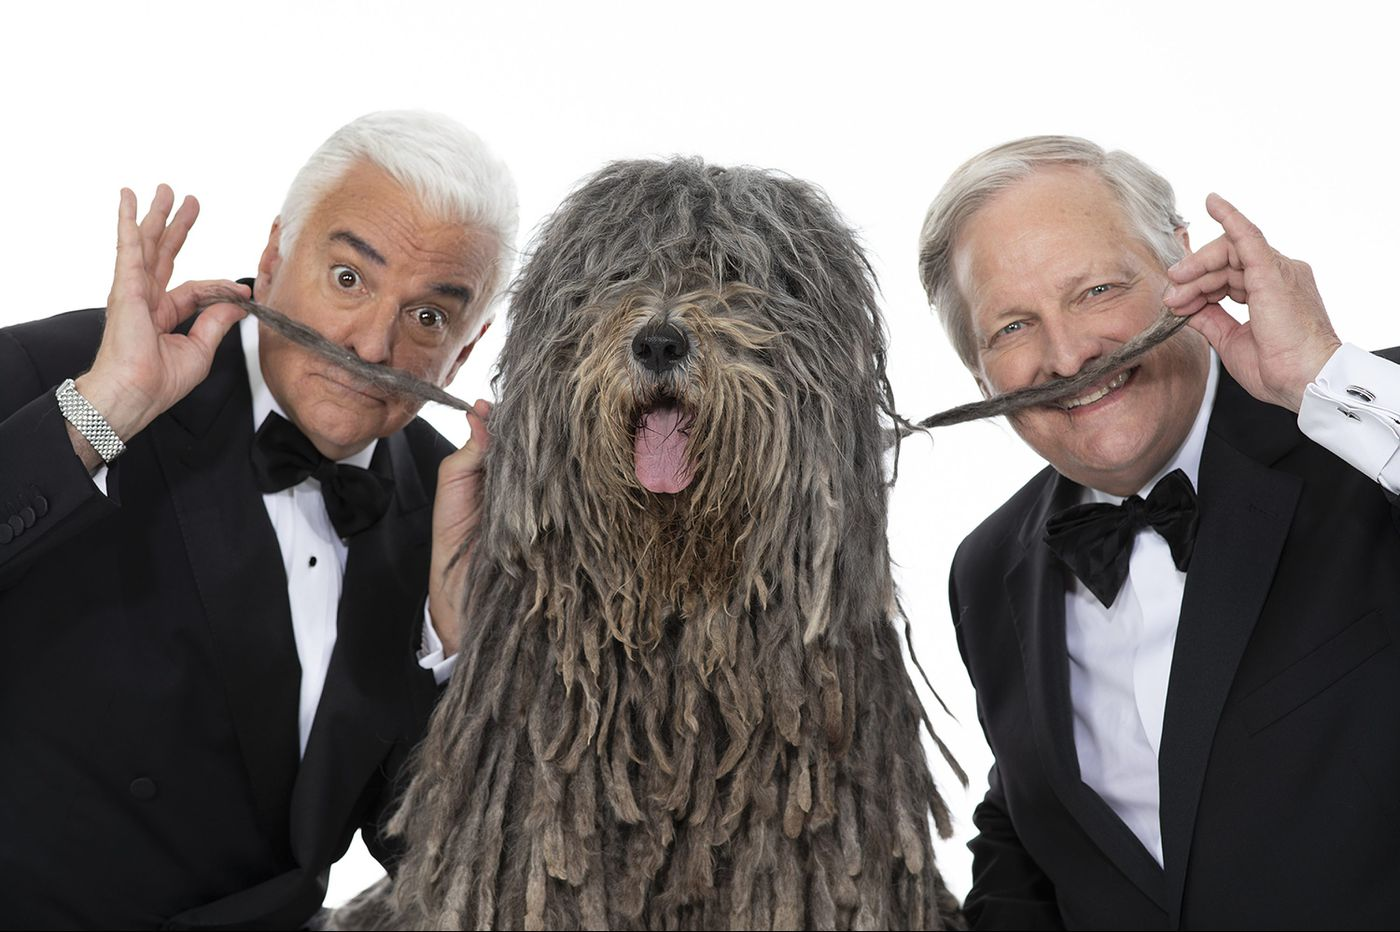 National Dog Show: Pictures of 10 of the 'weirdest' breeds you can see — and pet — this weekend